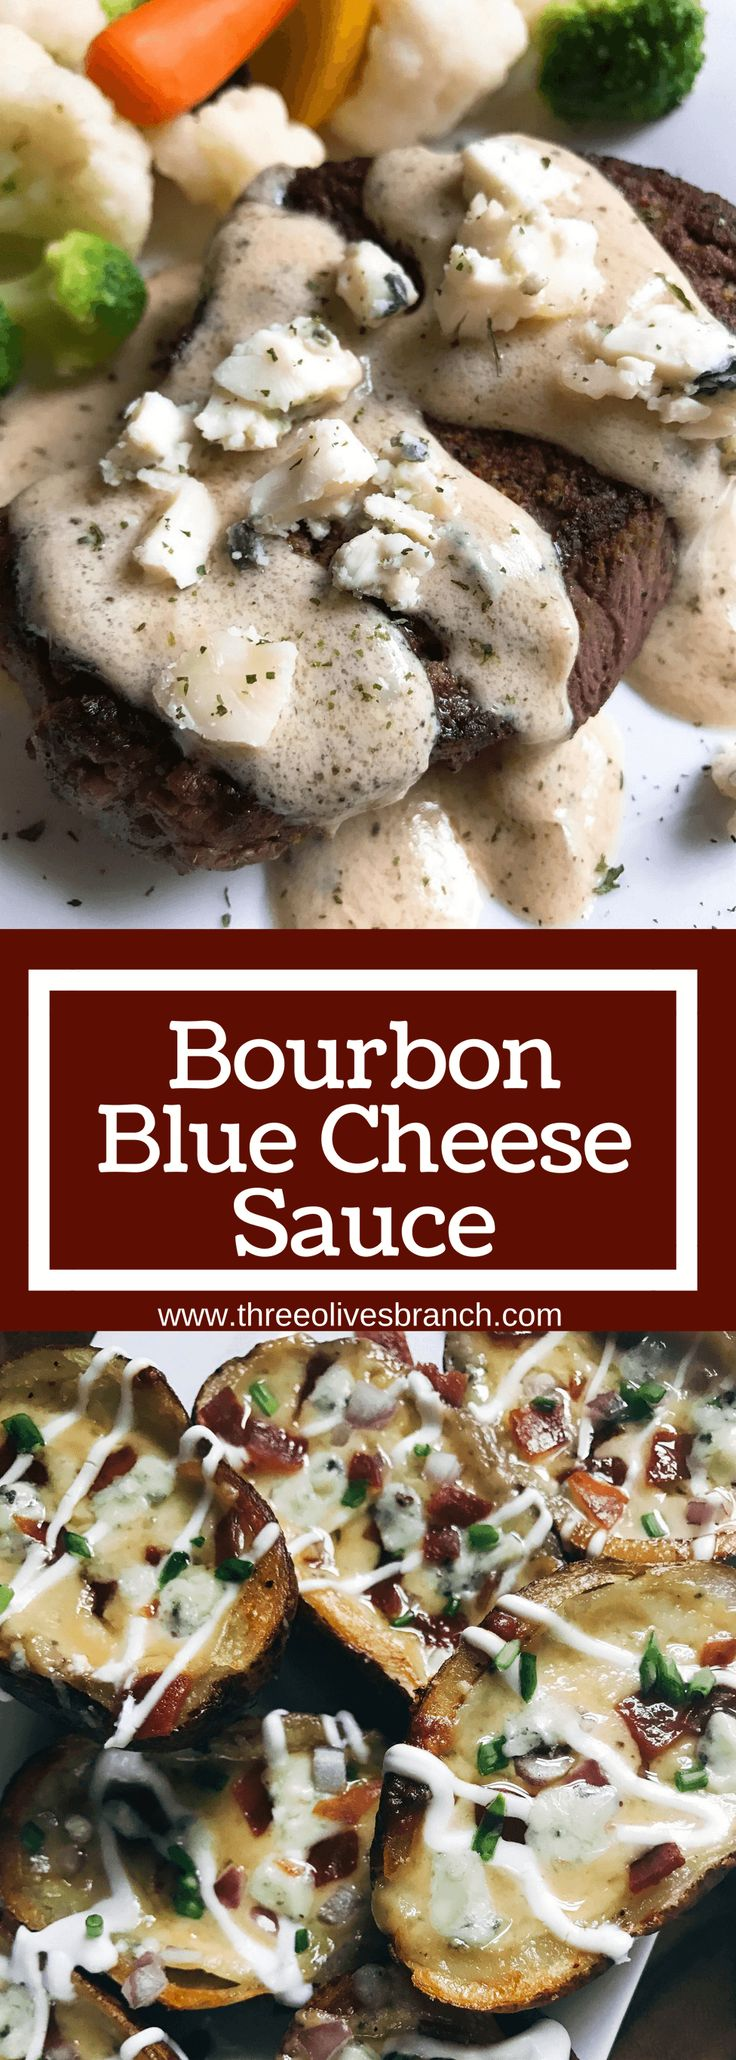 Ready in 10 minutes, this versatile sauce is perfect for steak, chicken, vegetables, and more! Vegetarian. Bourbon adds depth of flavor but can be easily omitted. A great recipe to enhance your dish while fast and easy to make! Bourbon Blue Cheese Sauce   Three Olives Branch   www.threeolivesbranch.com